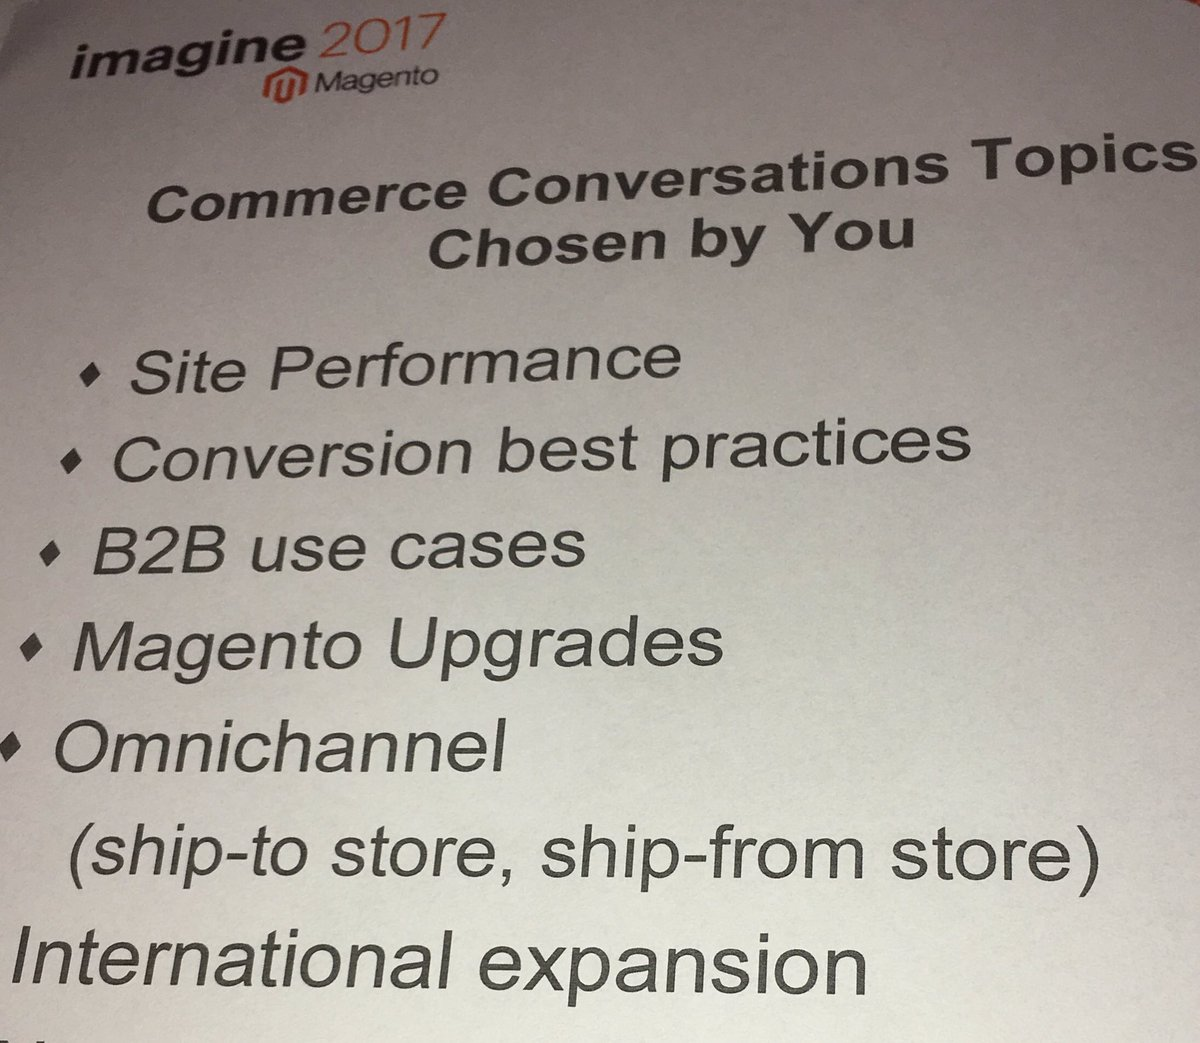 benjaminrobie: Time for some #commerceConversations! #MagentoImagine https://t.co/d6mH3fkNk0